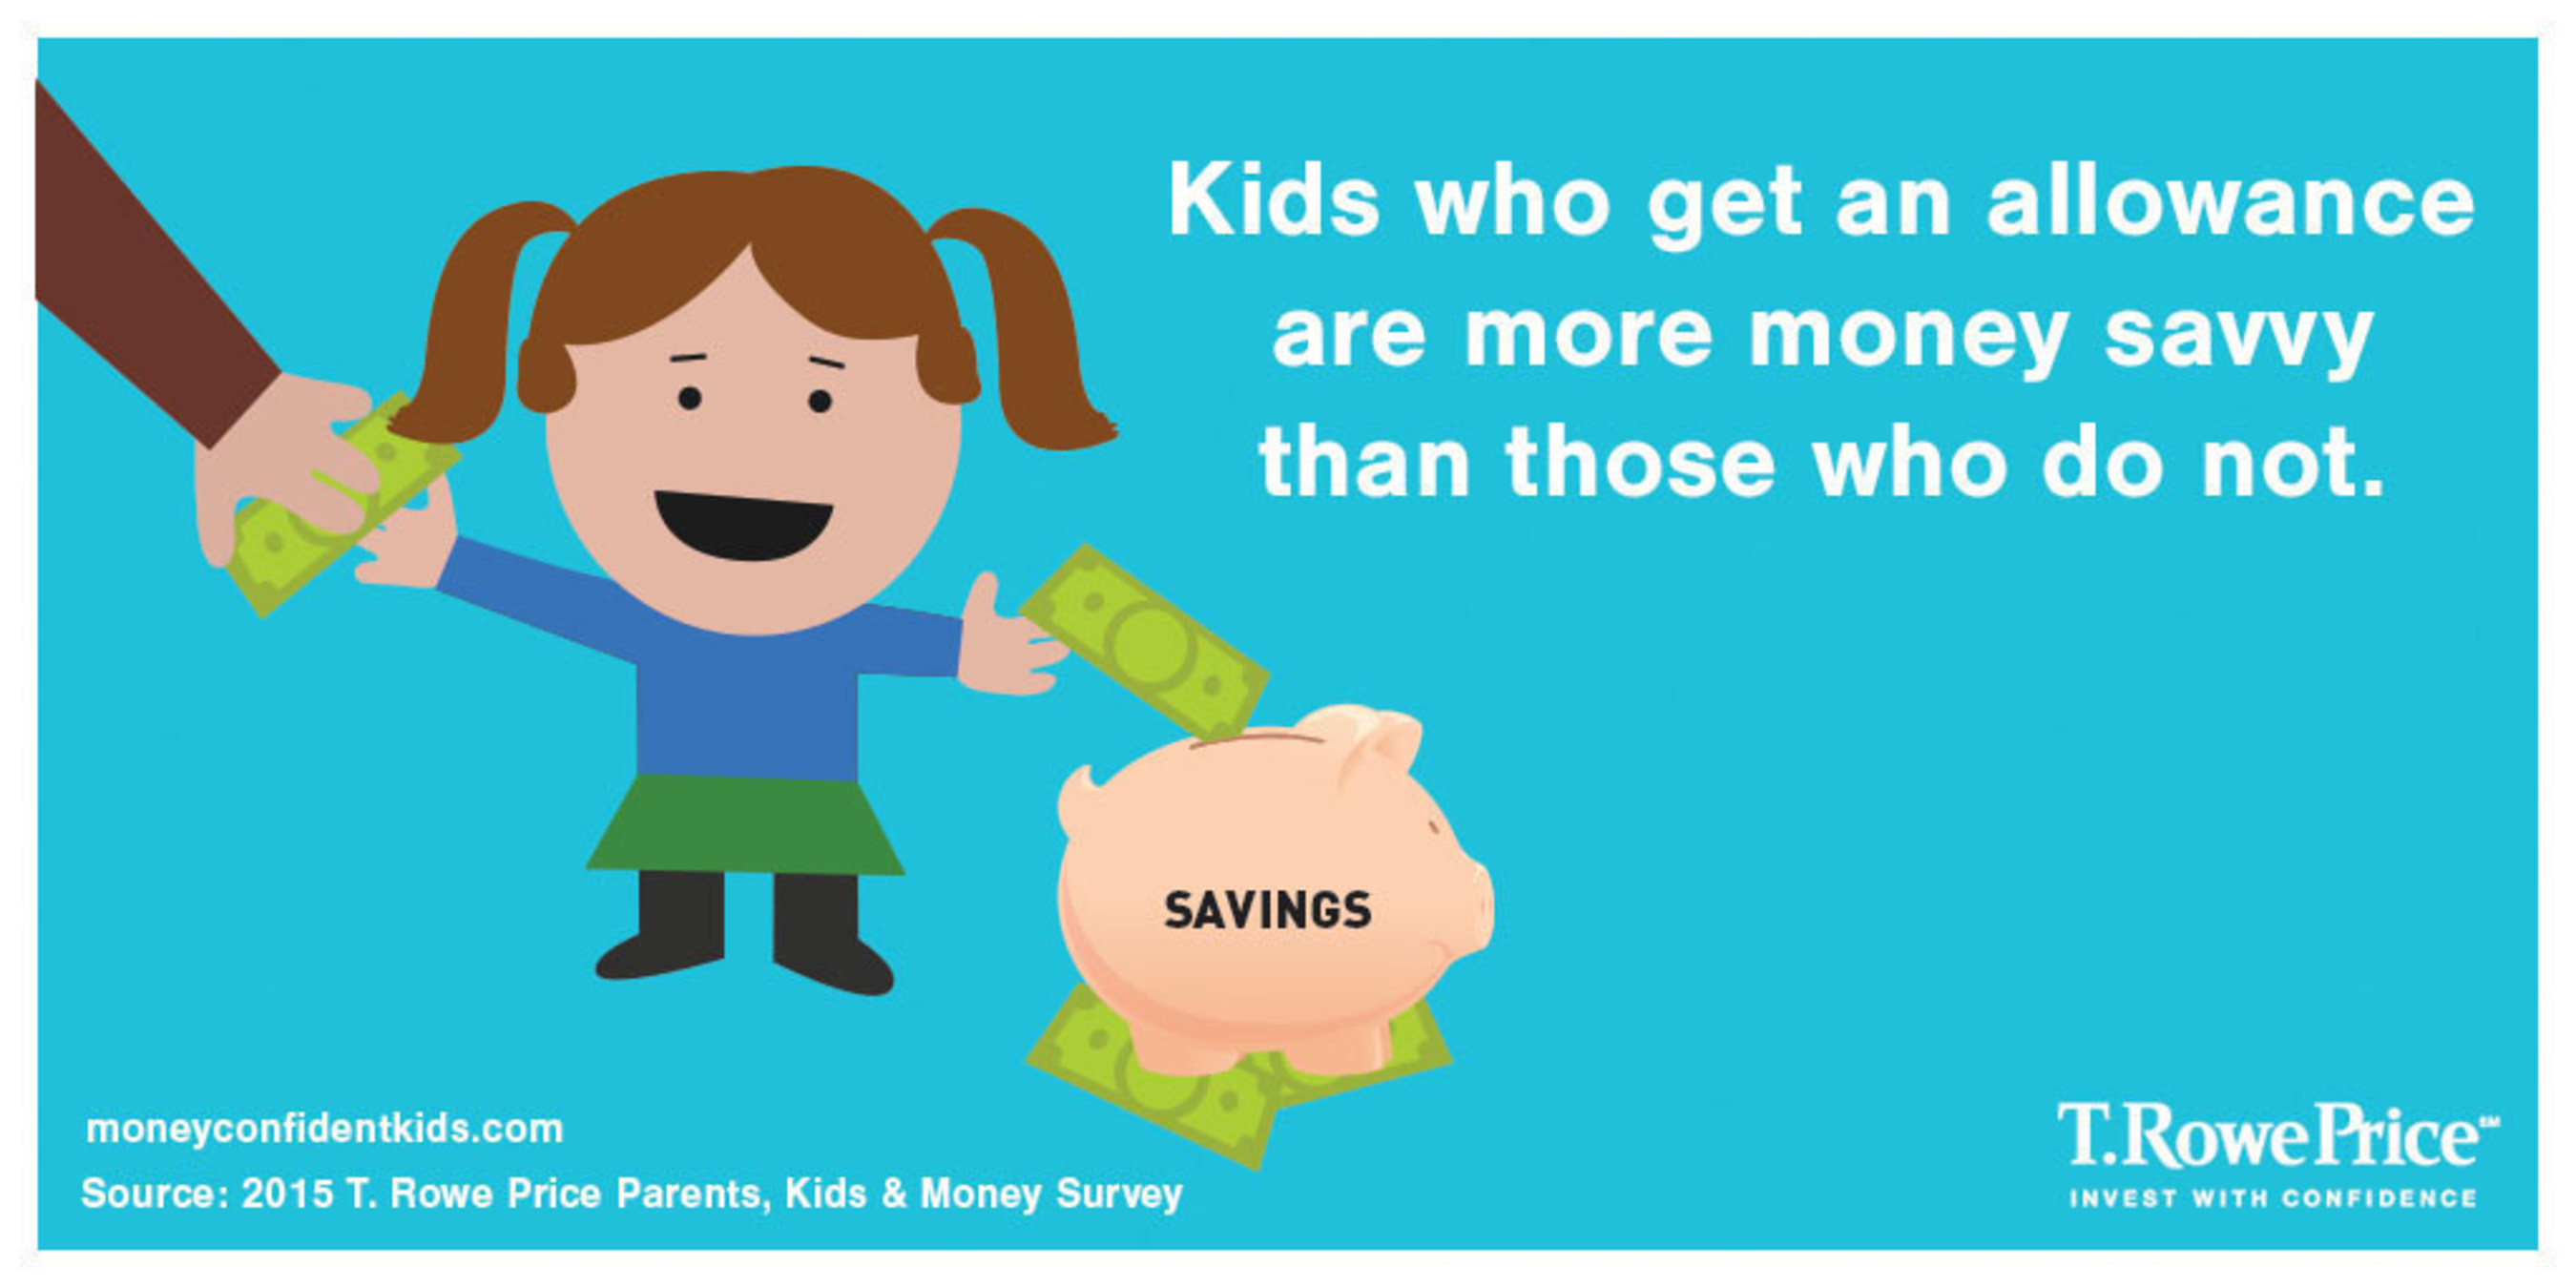 T. Rowe Price: Kids Who Get An Allowance Are More Money Savvy Than Those Who Do Not